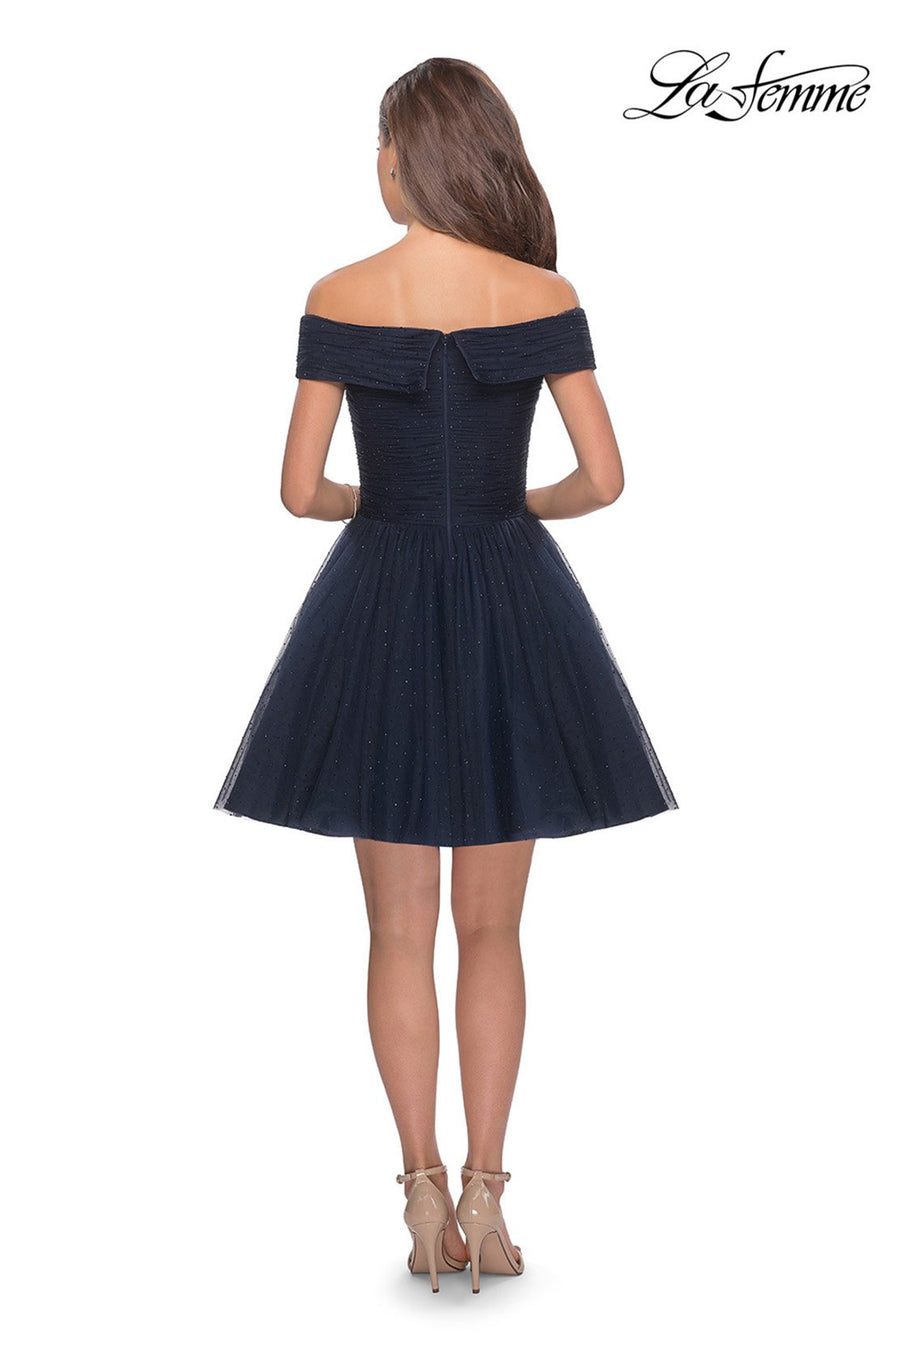 La Femme 28234 prom dress images.  La Femme 28234 is available in these colors: Navy.